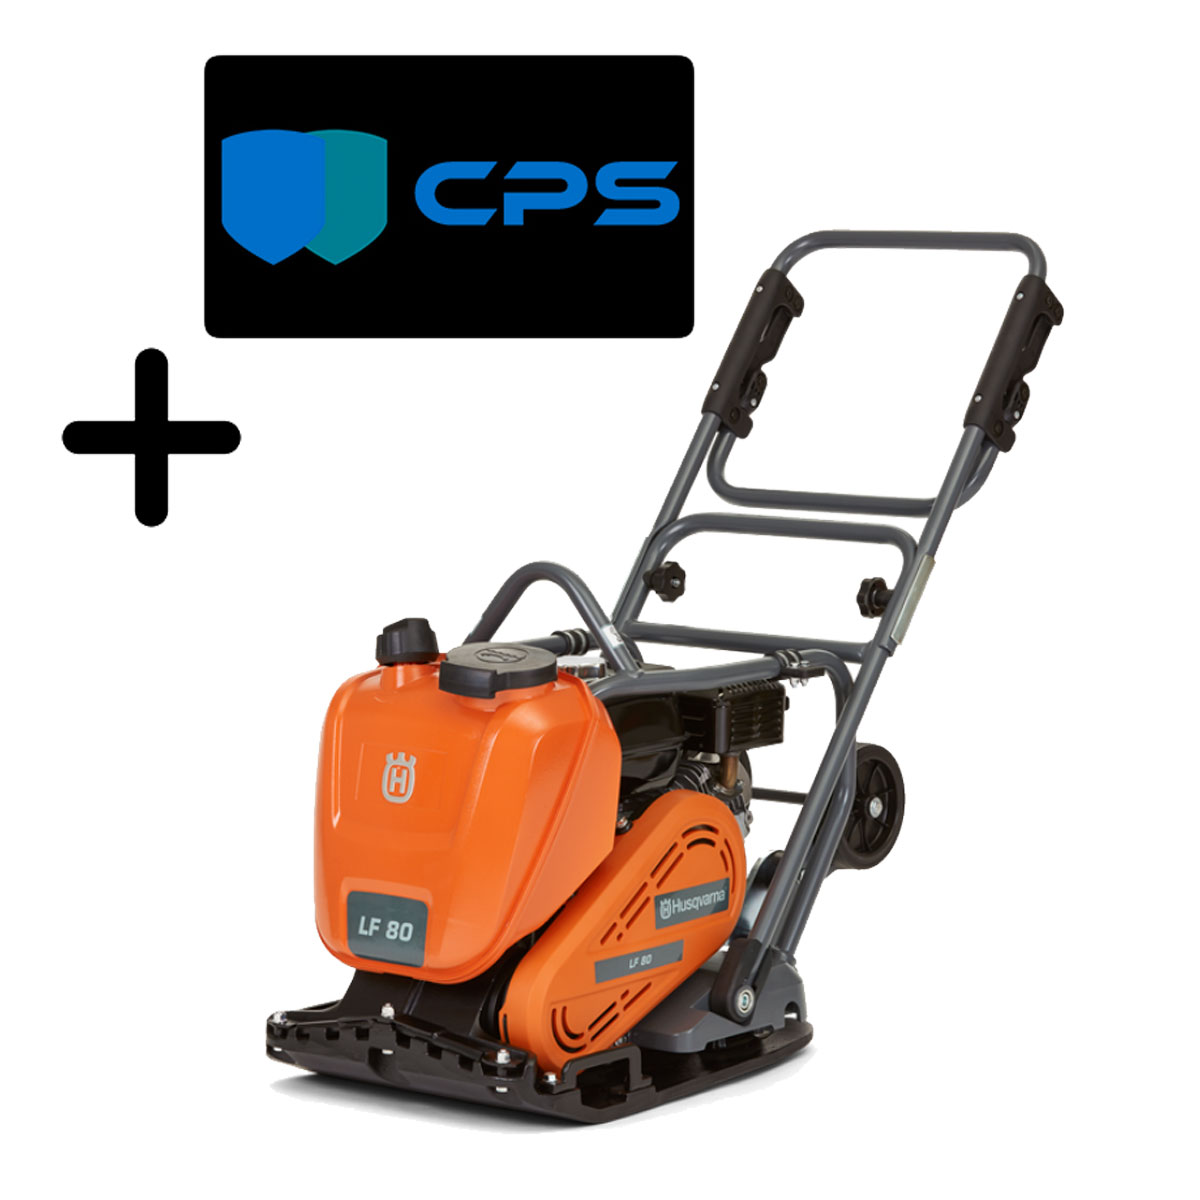 Husqvarna LF80 LAT Soil And Asphalt Compation Machine GX160 Honda 967855002 LF 80 LAT Compactors 3 Yr Warranty Freight Inc